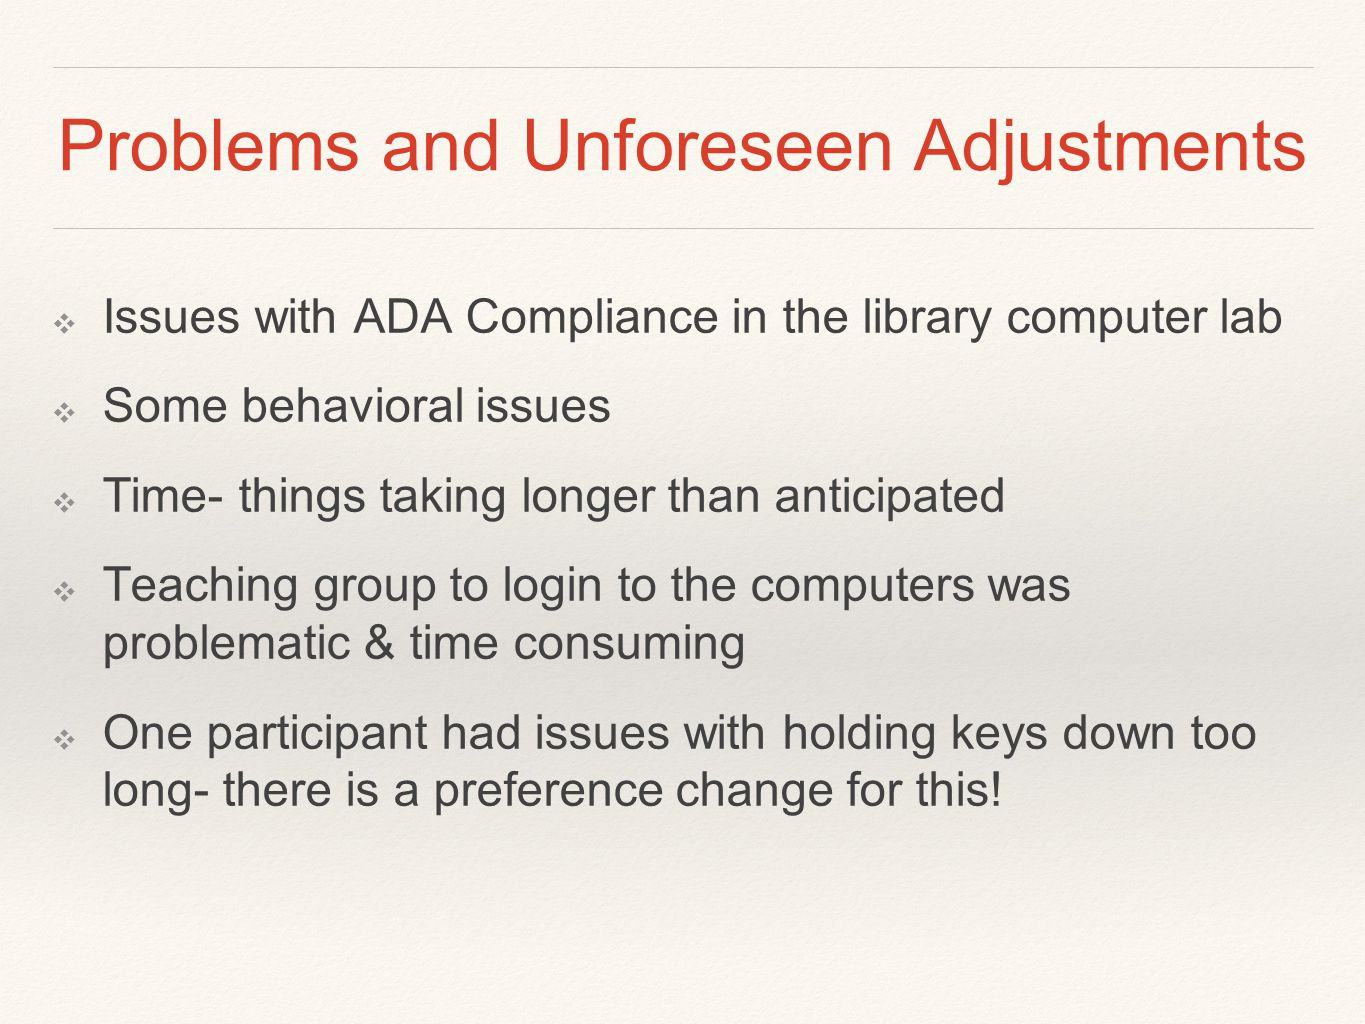 Problems and Unforeseen Adjustments ❖ Issues with ADA Compliance in the library computer lab ❖ Some behavioral issues ❖ Time- things taking longer than anticipated ❖ Teaching group to login to the computers was problematic & time consuming ❖ One participant had issues with holding keys down too long- there is a preference change for this!